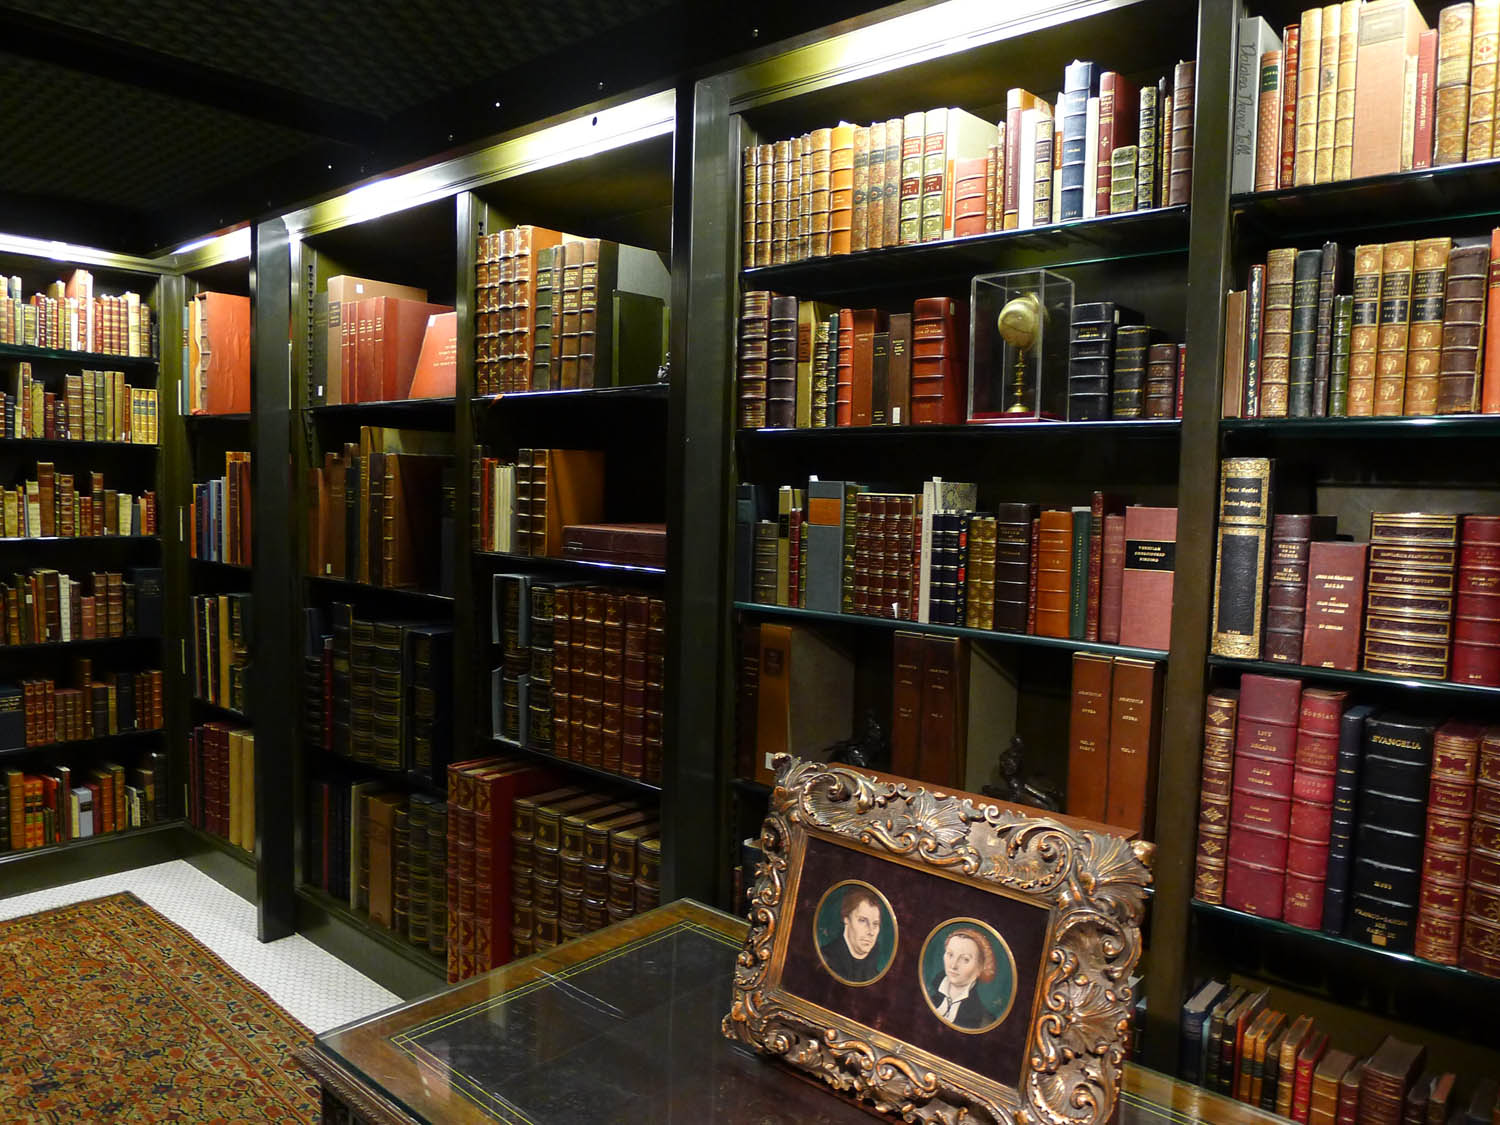 Inside - rare, expensive books